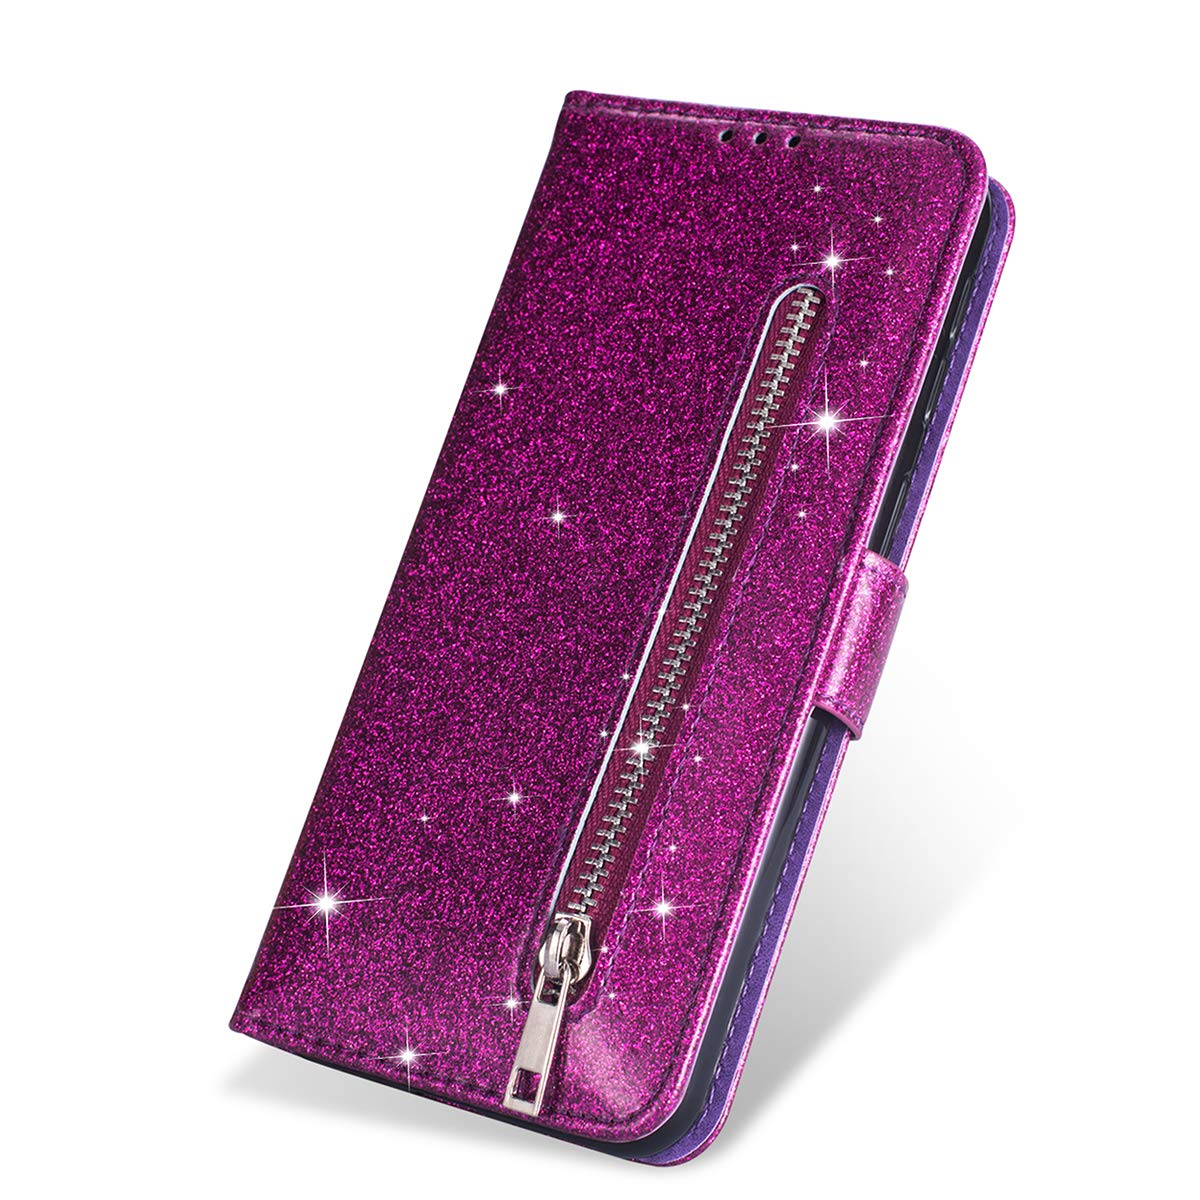 """ZCDAYE Wallet Case for iPhone 11 Pro,Bling Glitter Sparkly Zipper PU Leather Magnetic Flip Folio Card Pockets Holder with Wrist Strap Stand Protective Case Cover foriPhone 11 Pro 5.8"""" - Purple"""